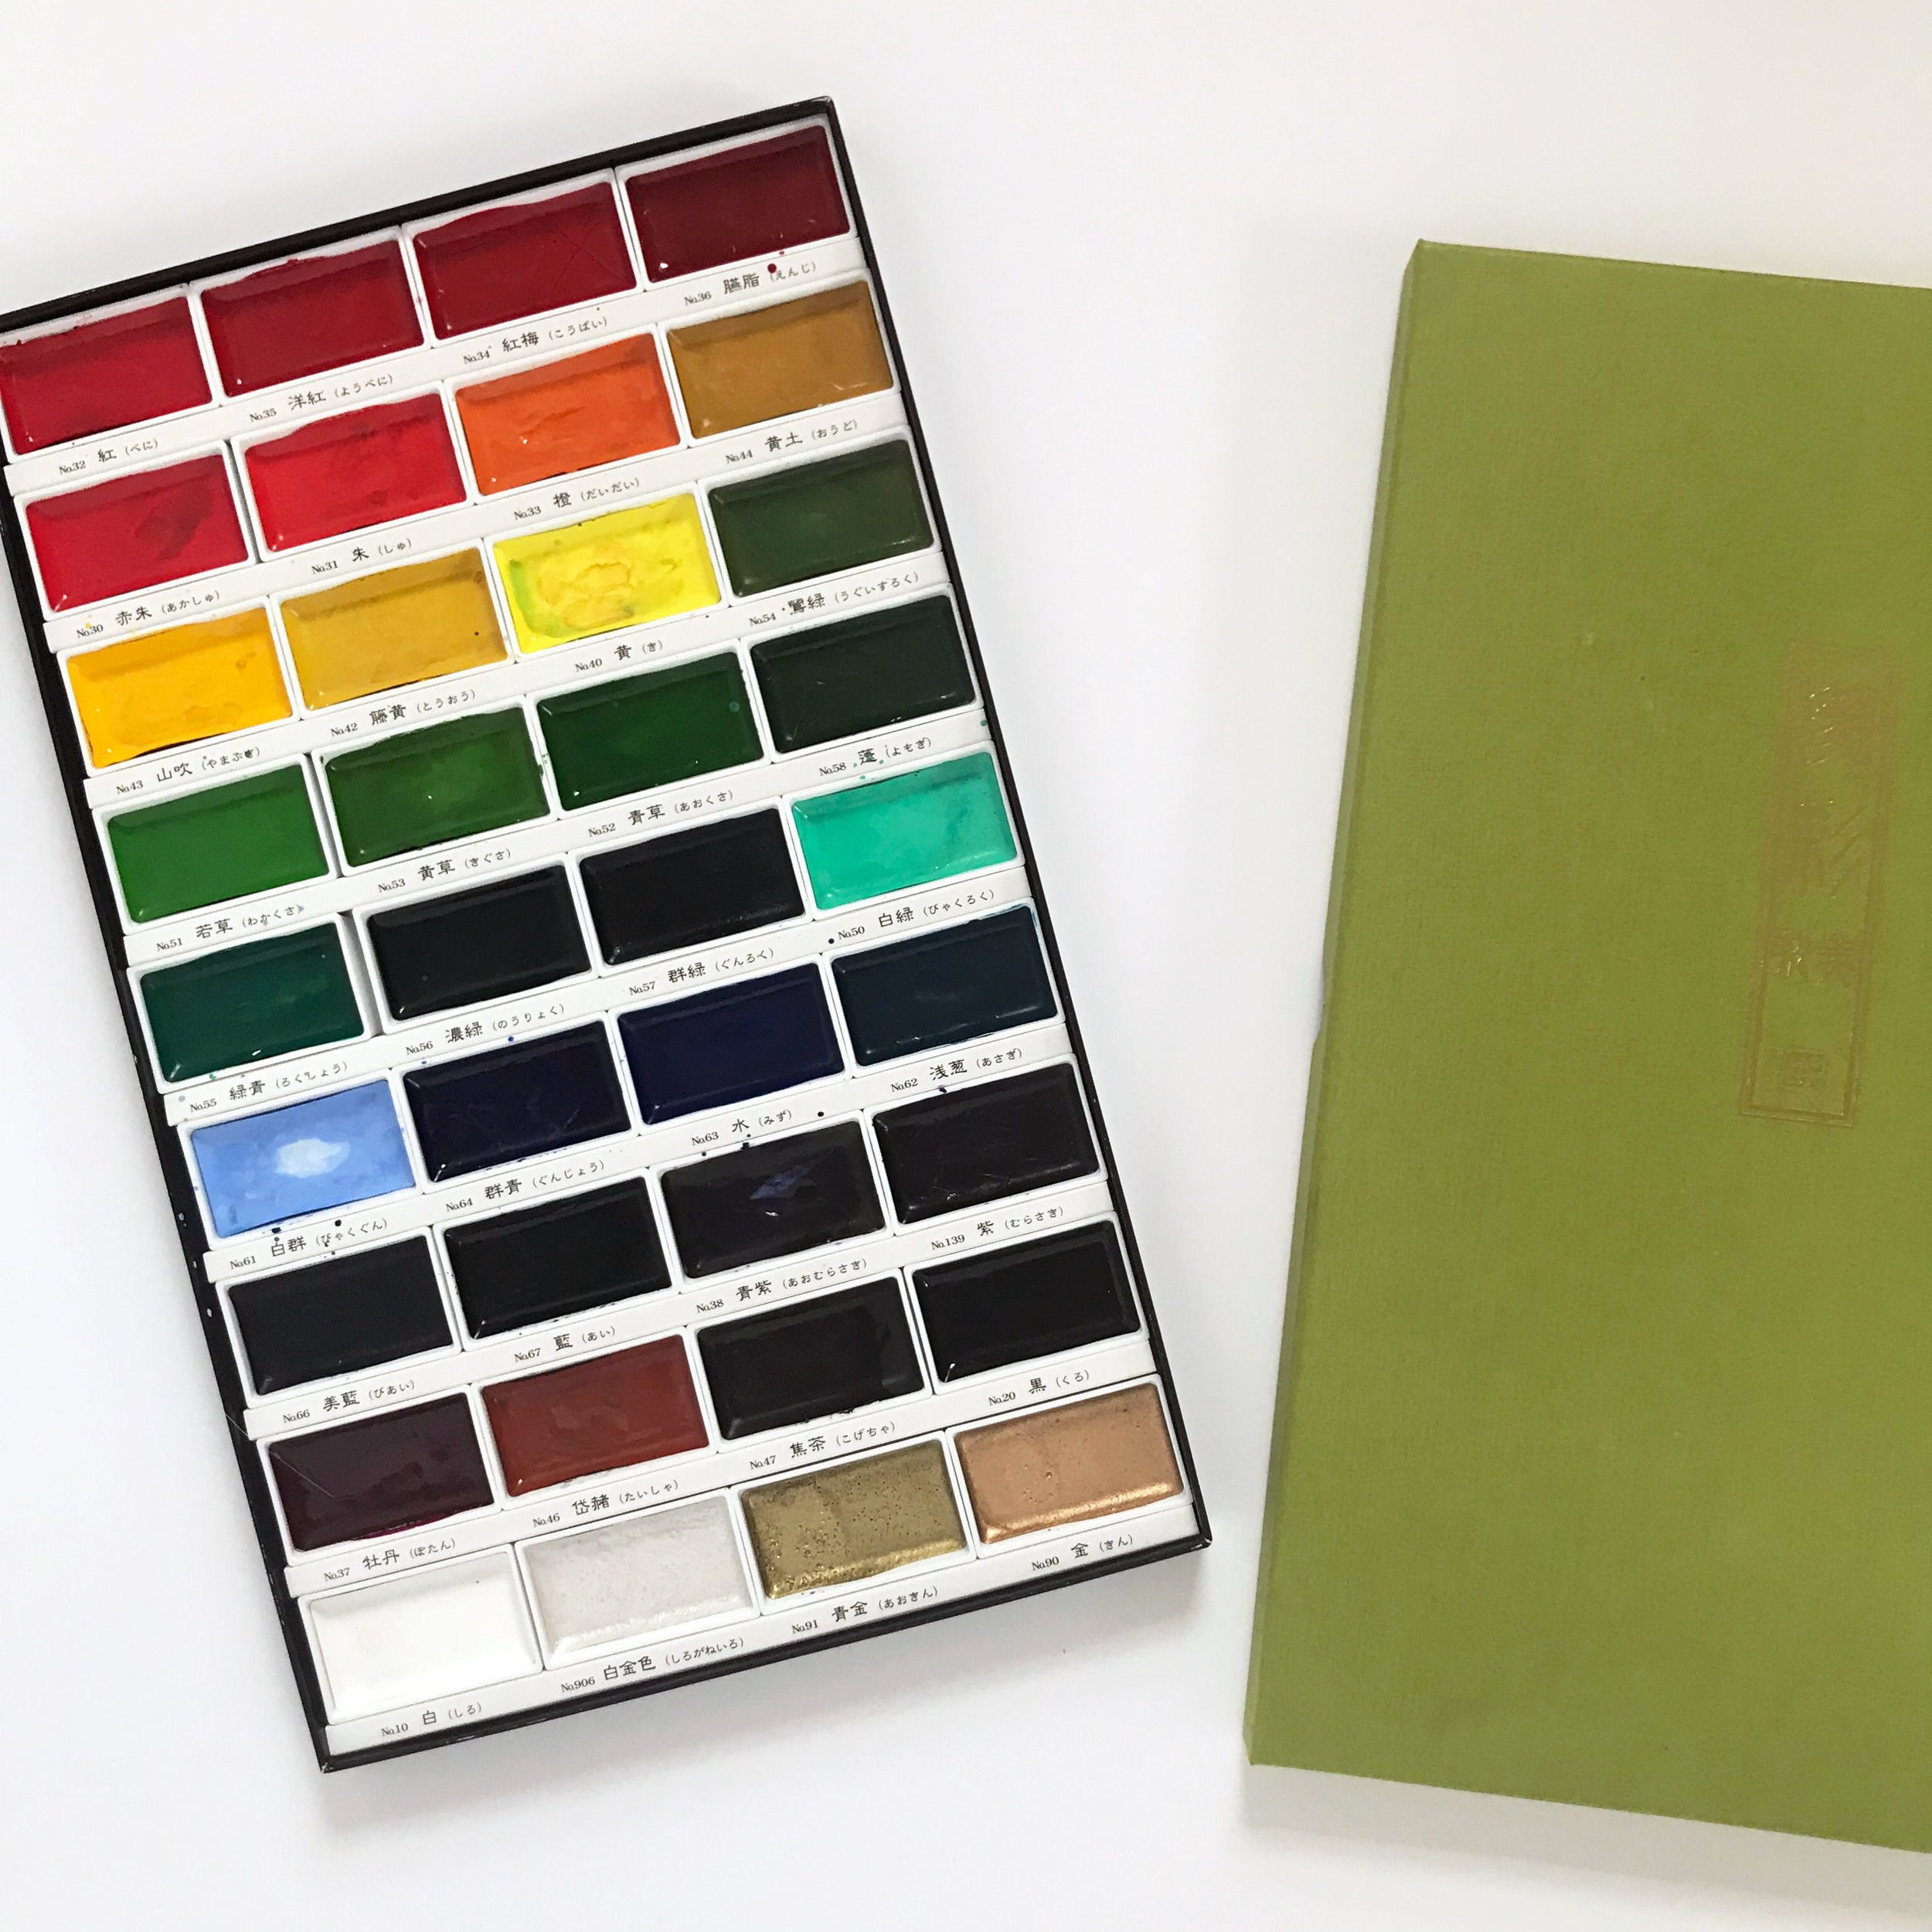 Kuretake Watercolors Are Inexpensive and Come in Sets with Many Beautiful Colors